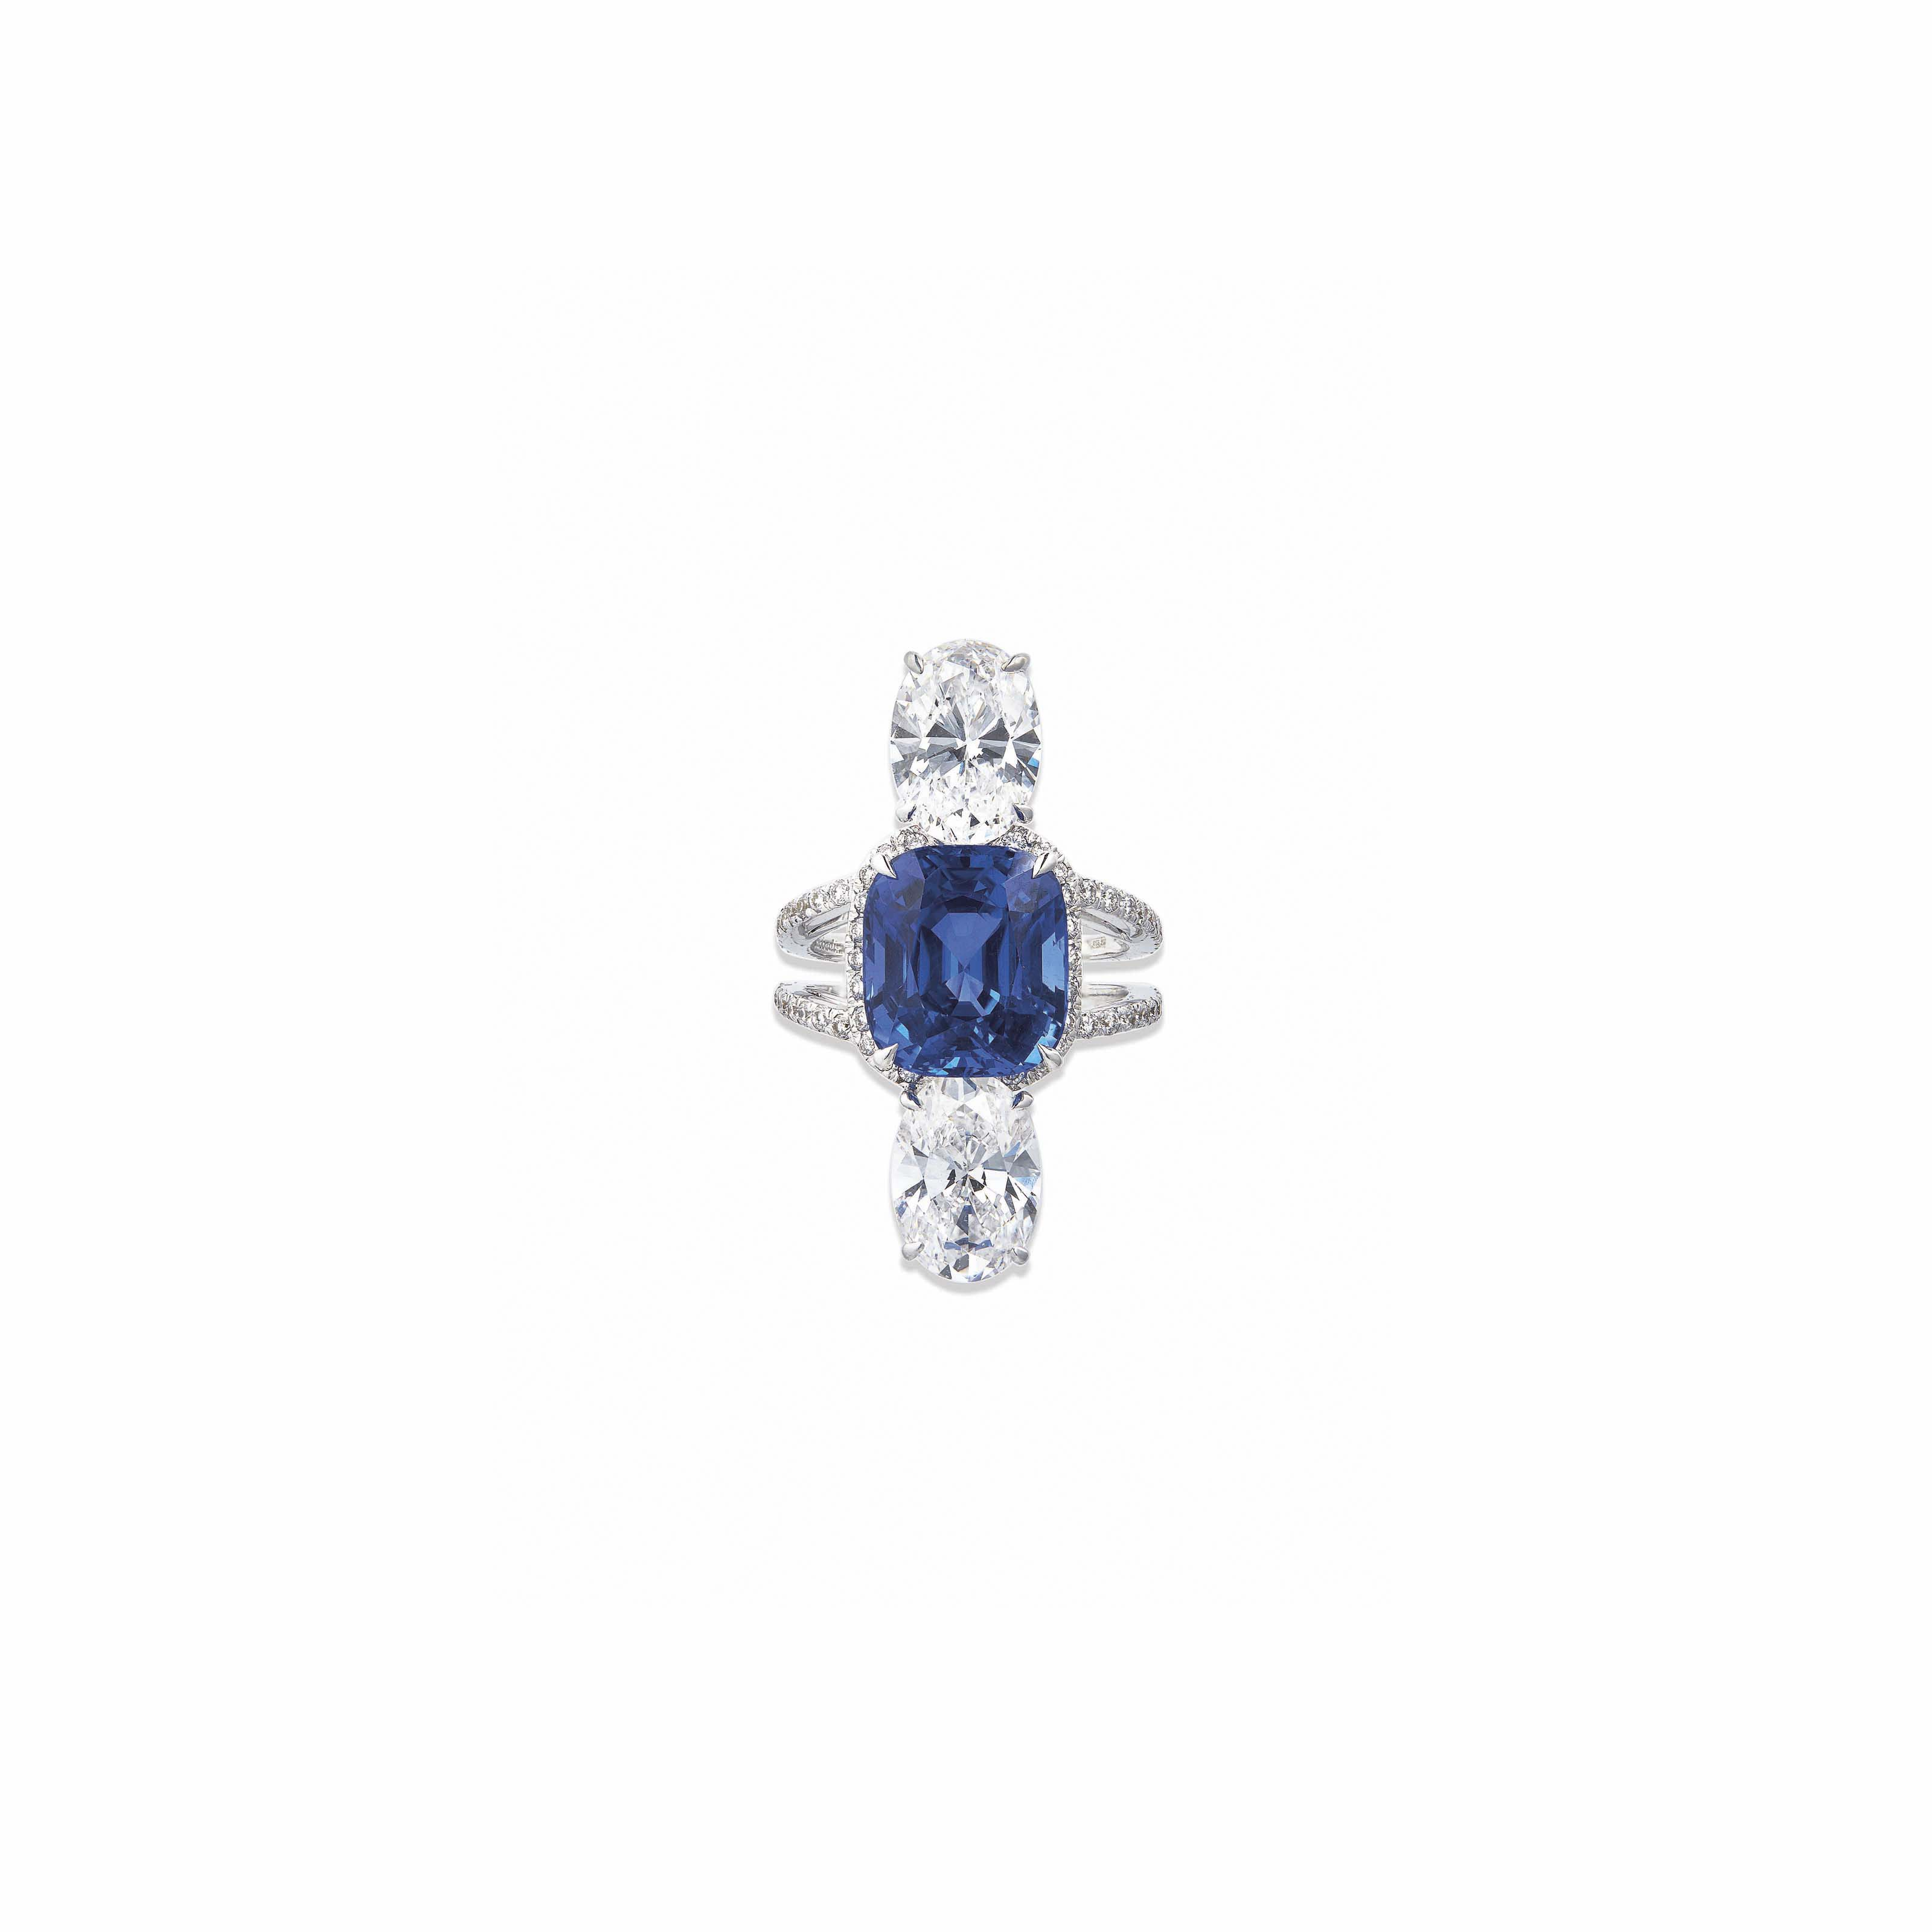 A SAPPHIRE AND DIAMOND RING, BY SABBADINI